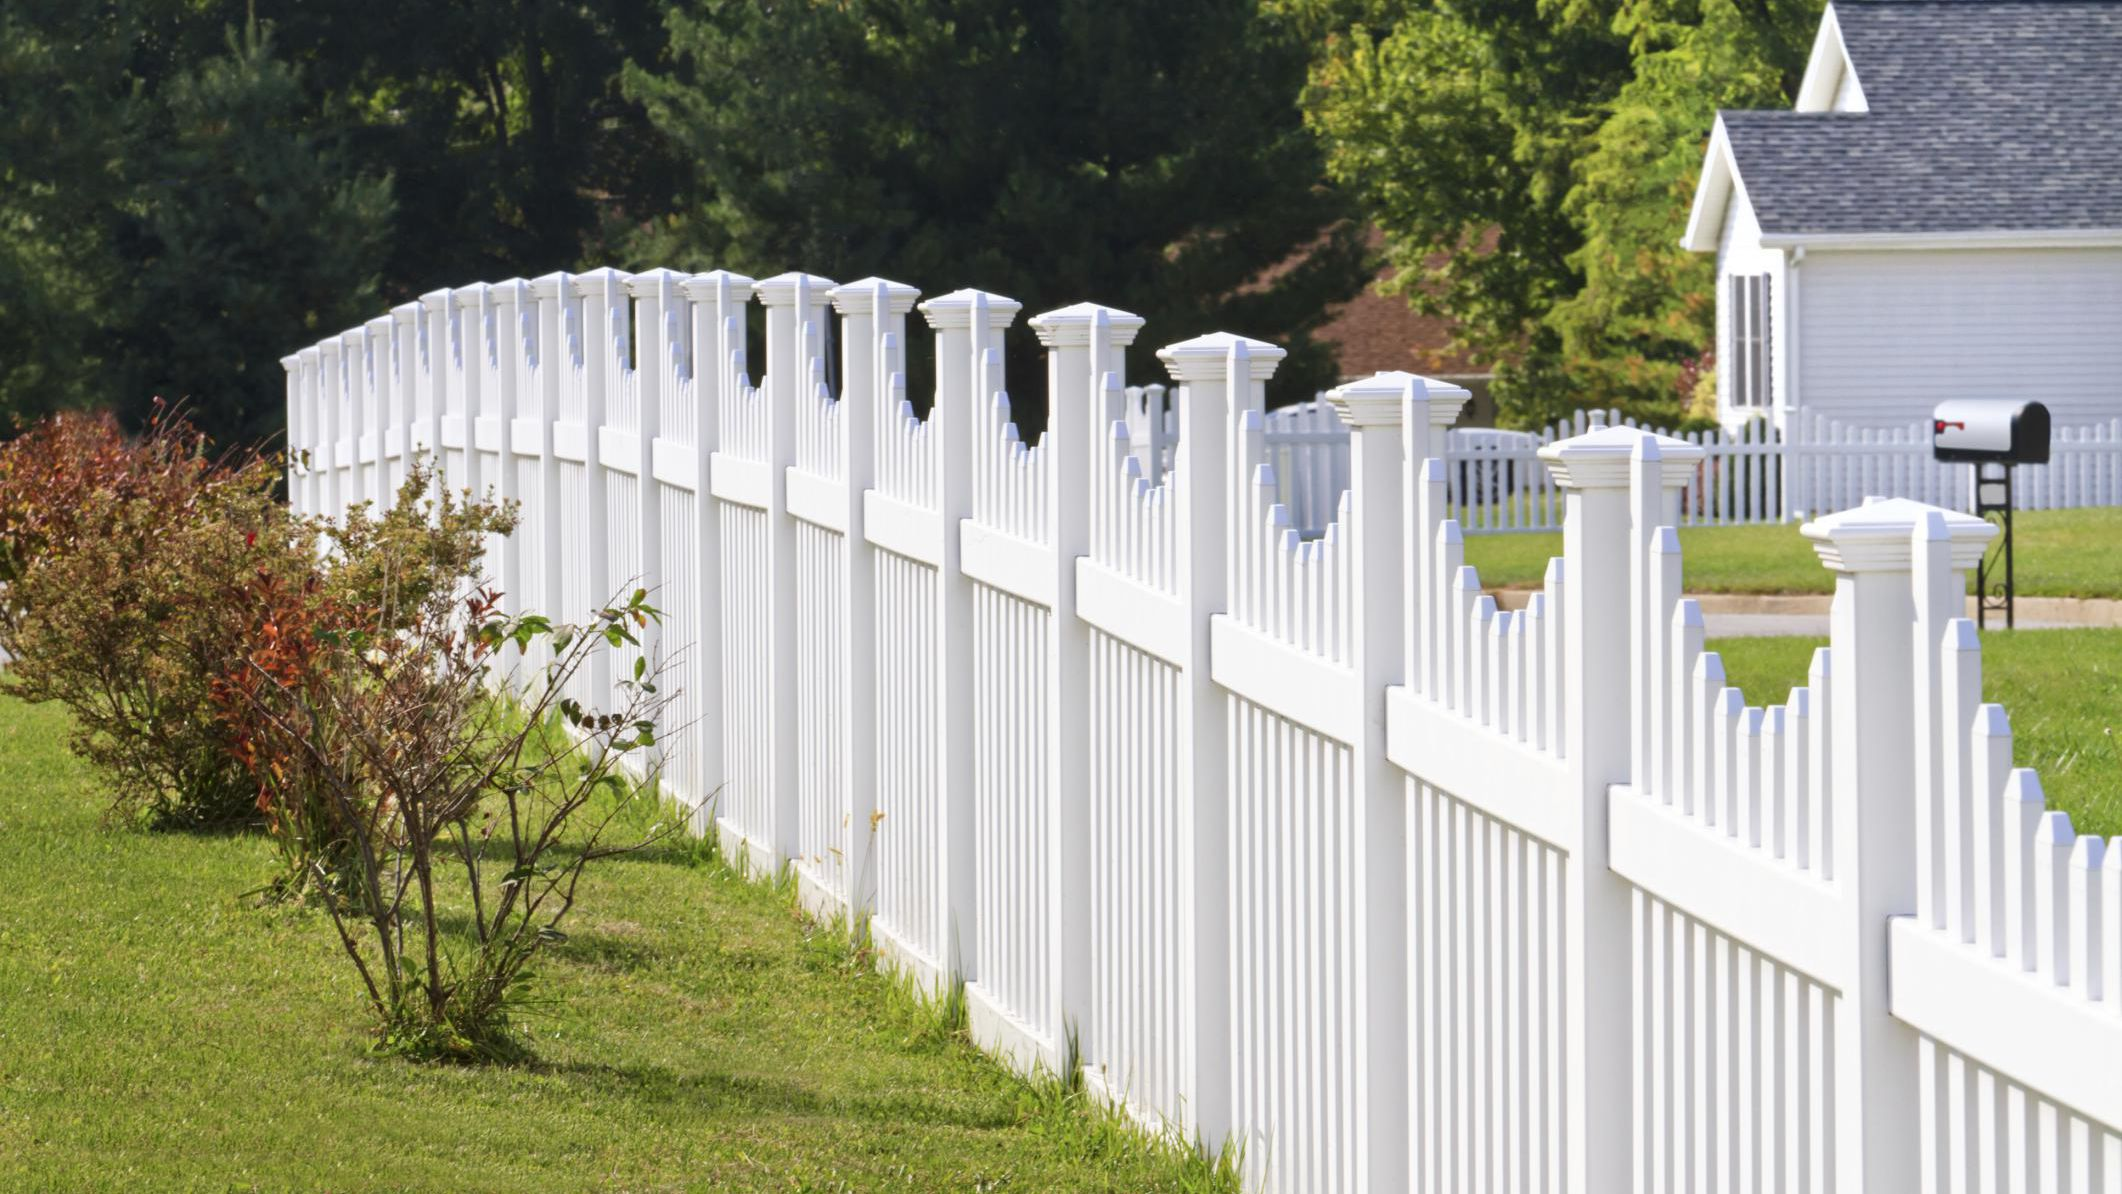 What to Expect When a Fence Company Install Your Fence?